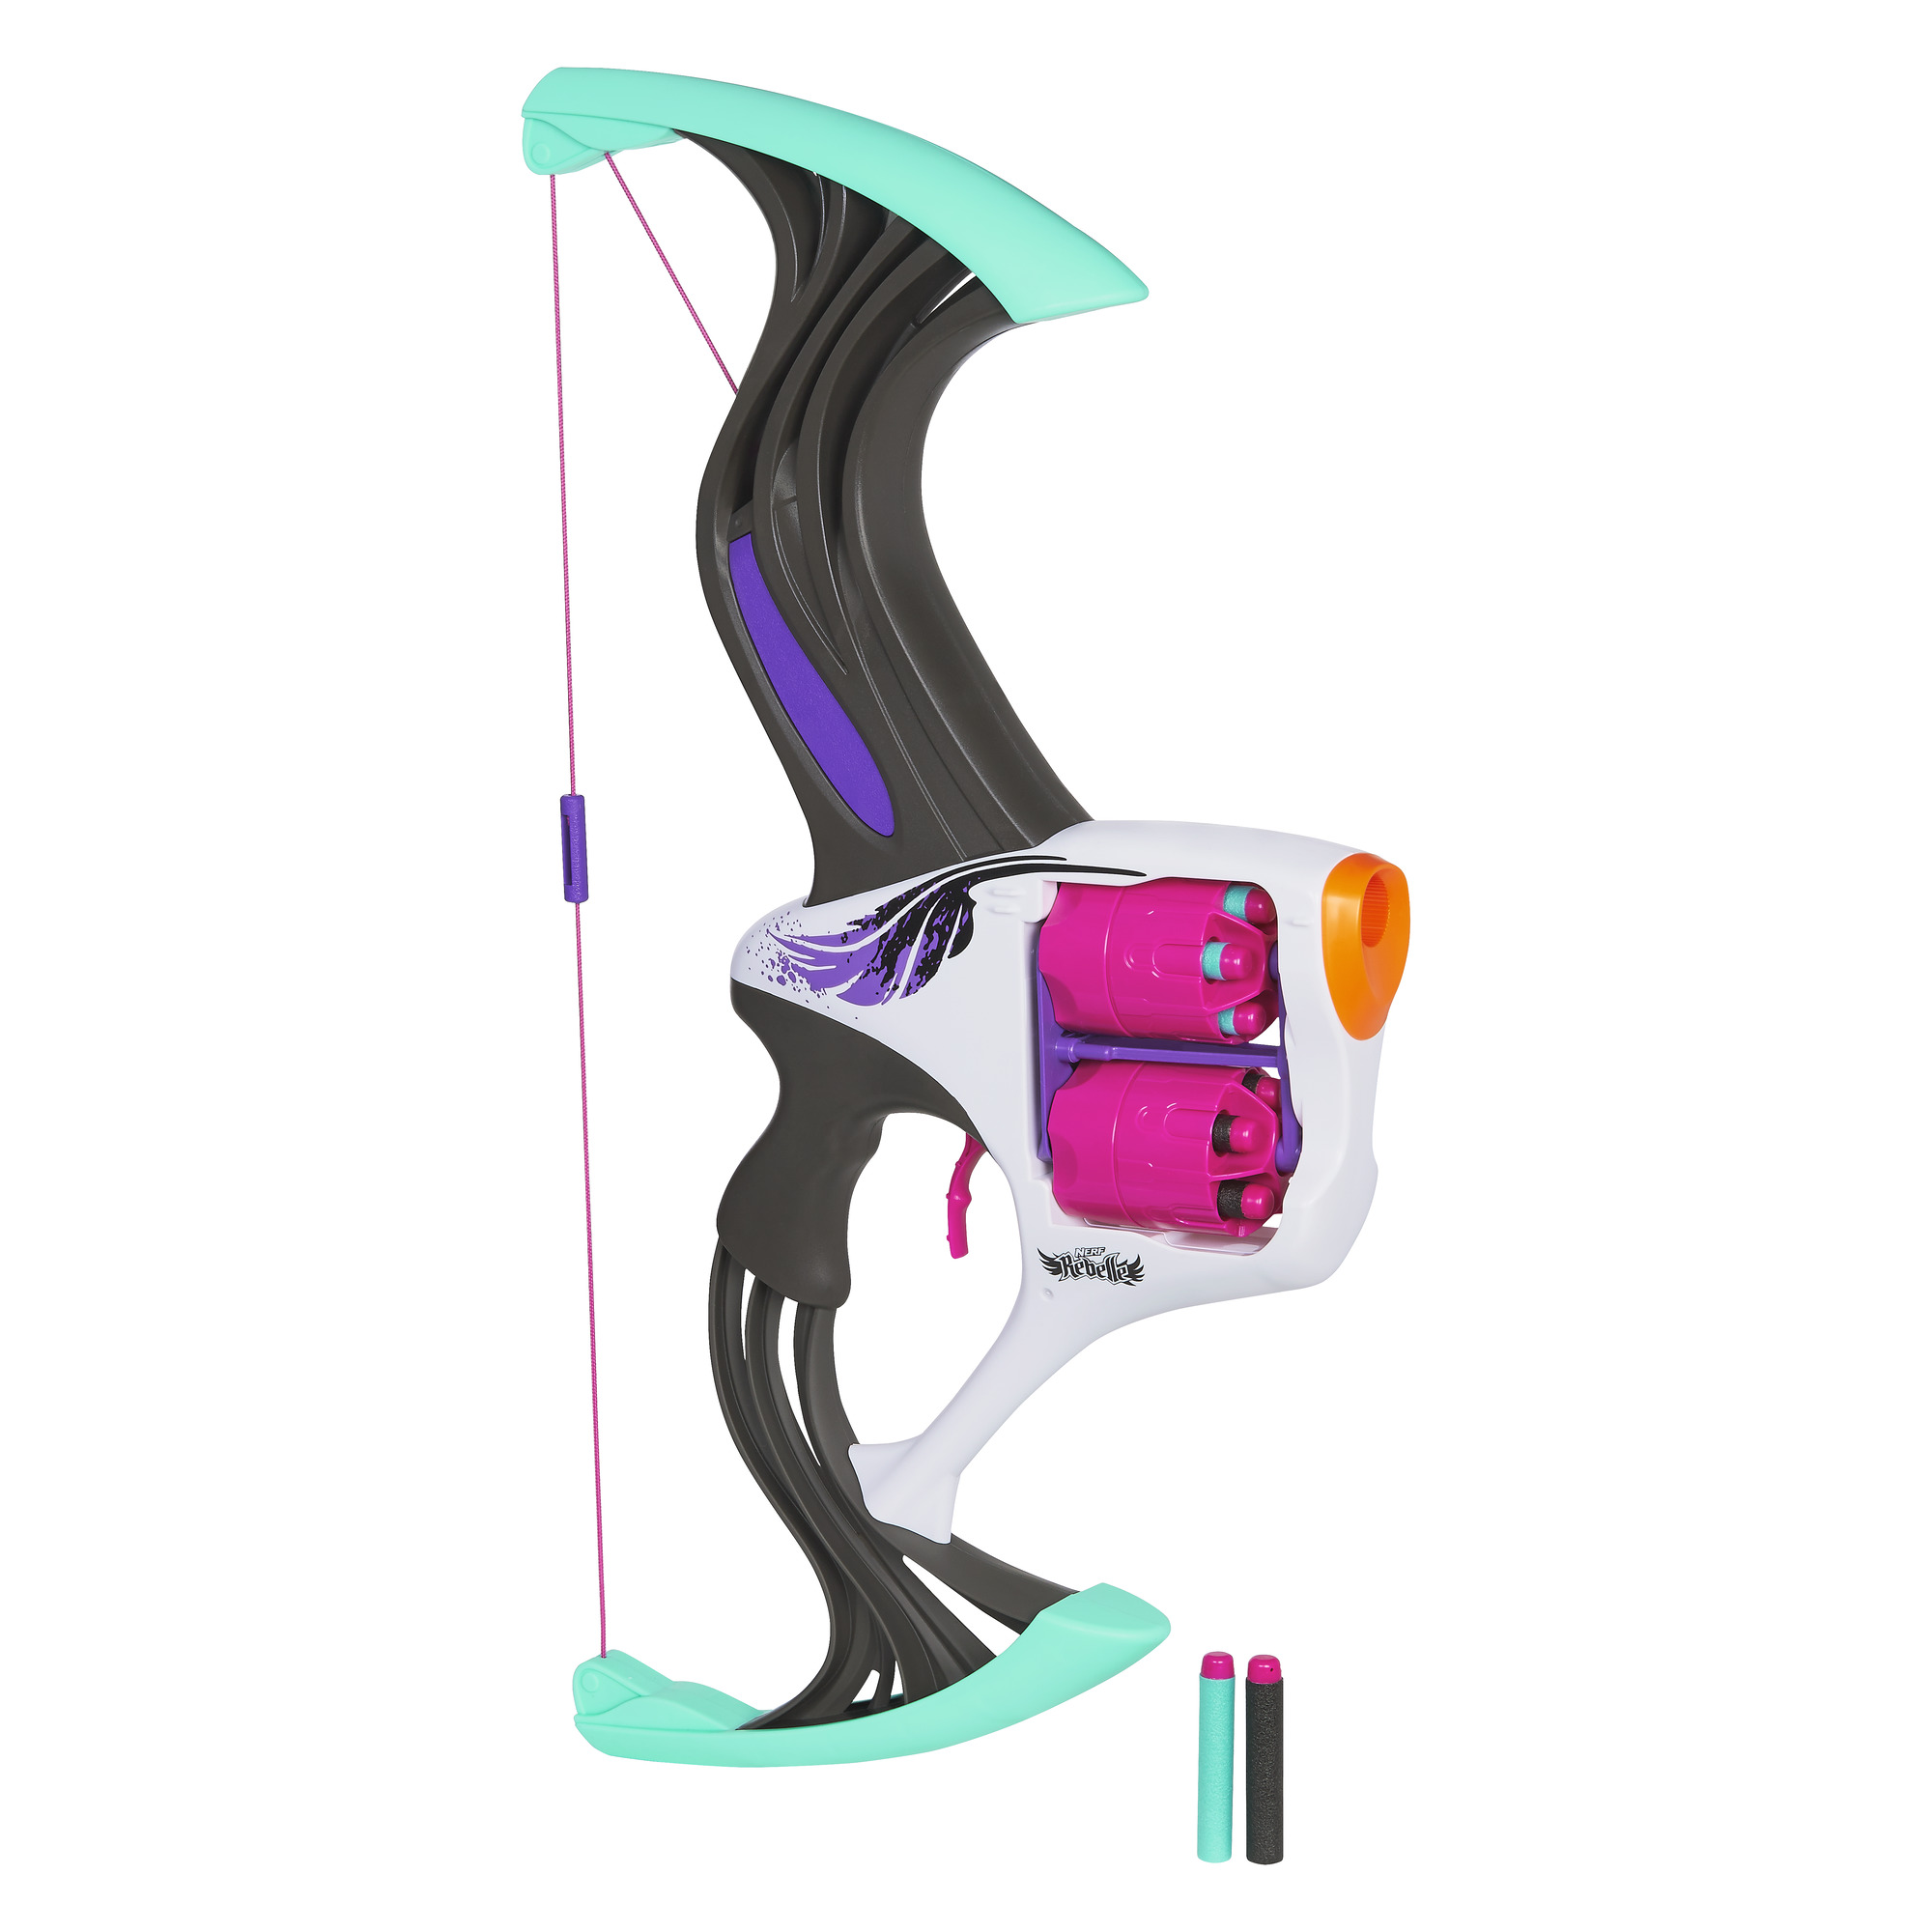 Nerf Rebelle Flipside Bow by Hasbro Inc.